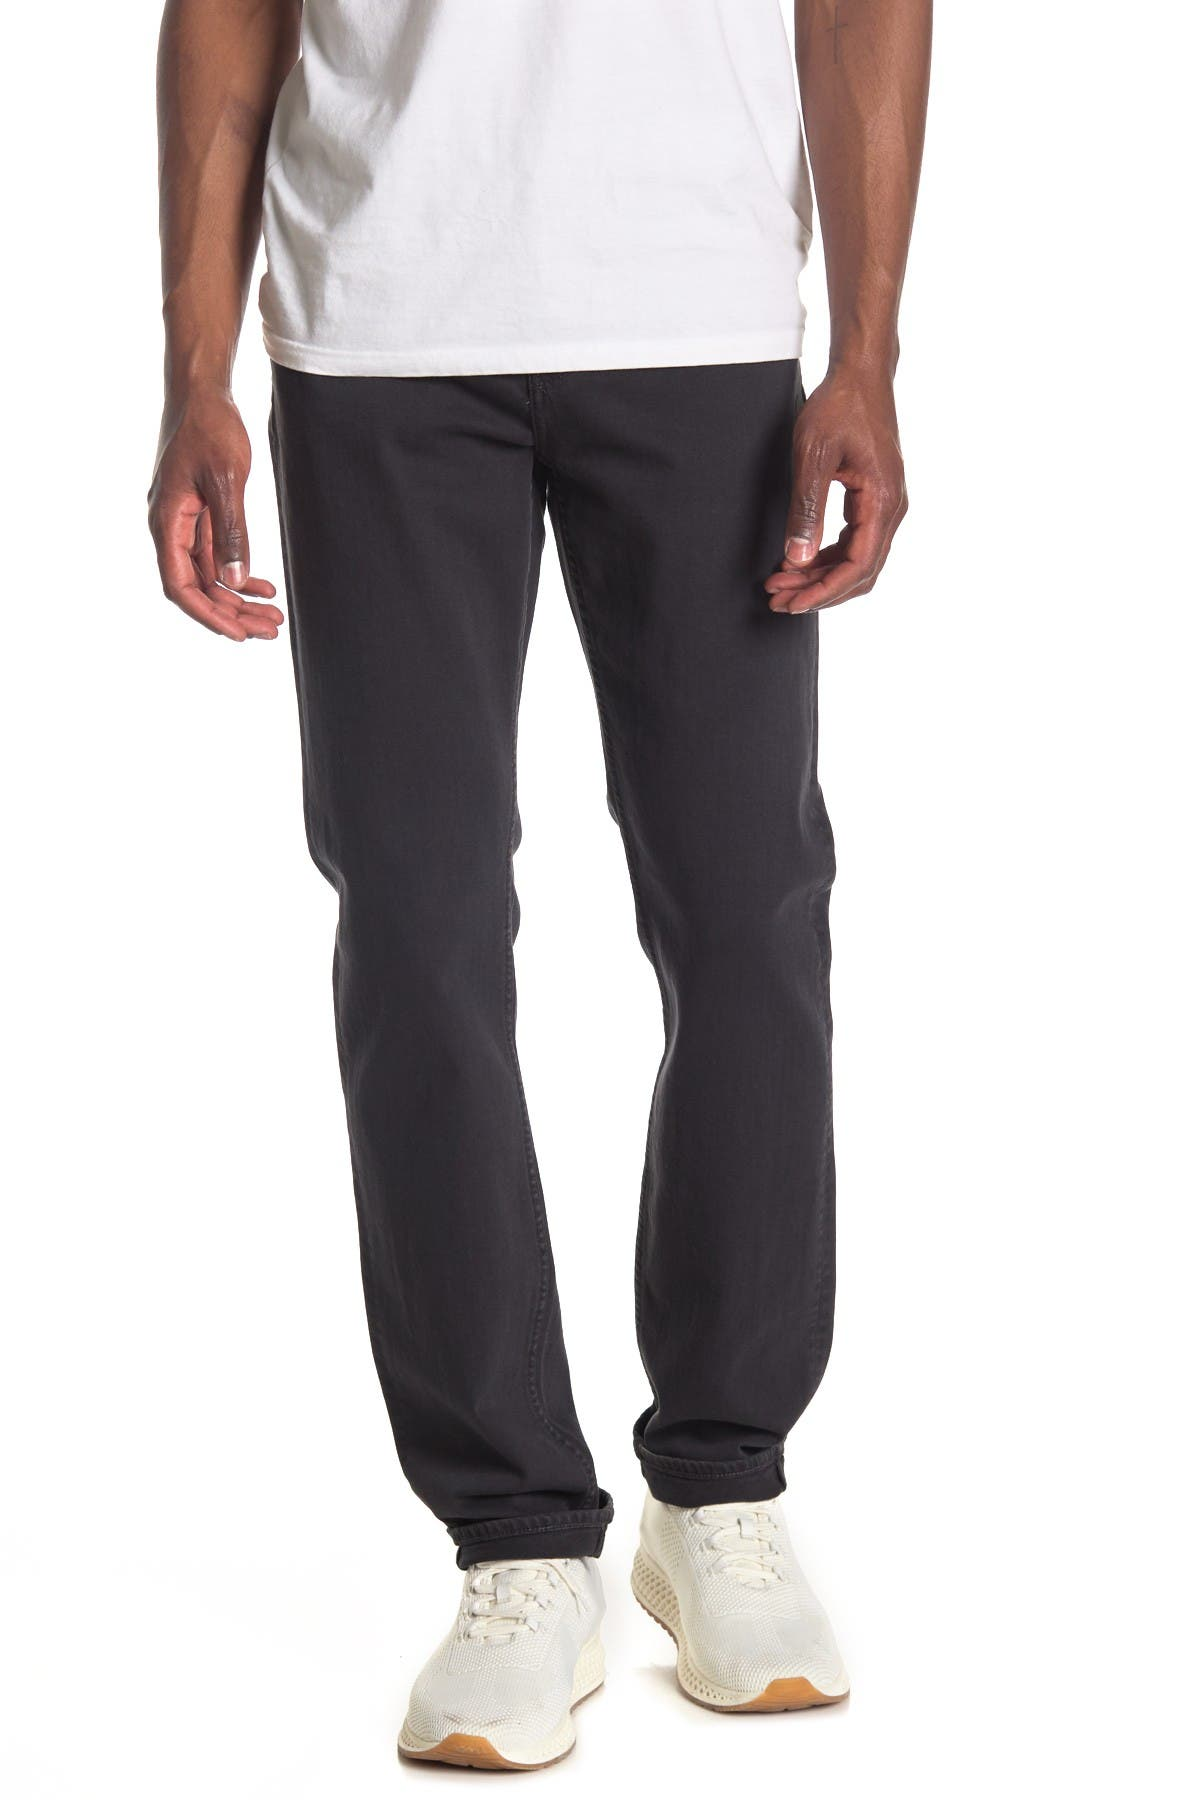 Image of 7 For All Mankind Slimmy Jeans